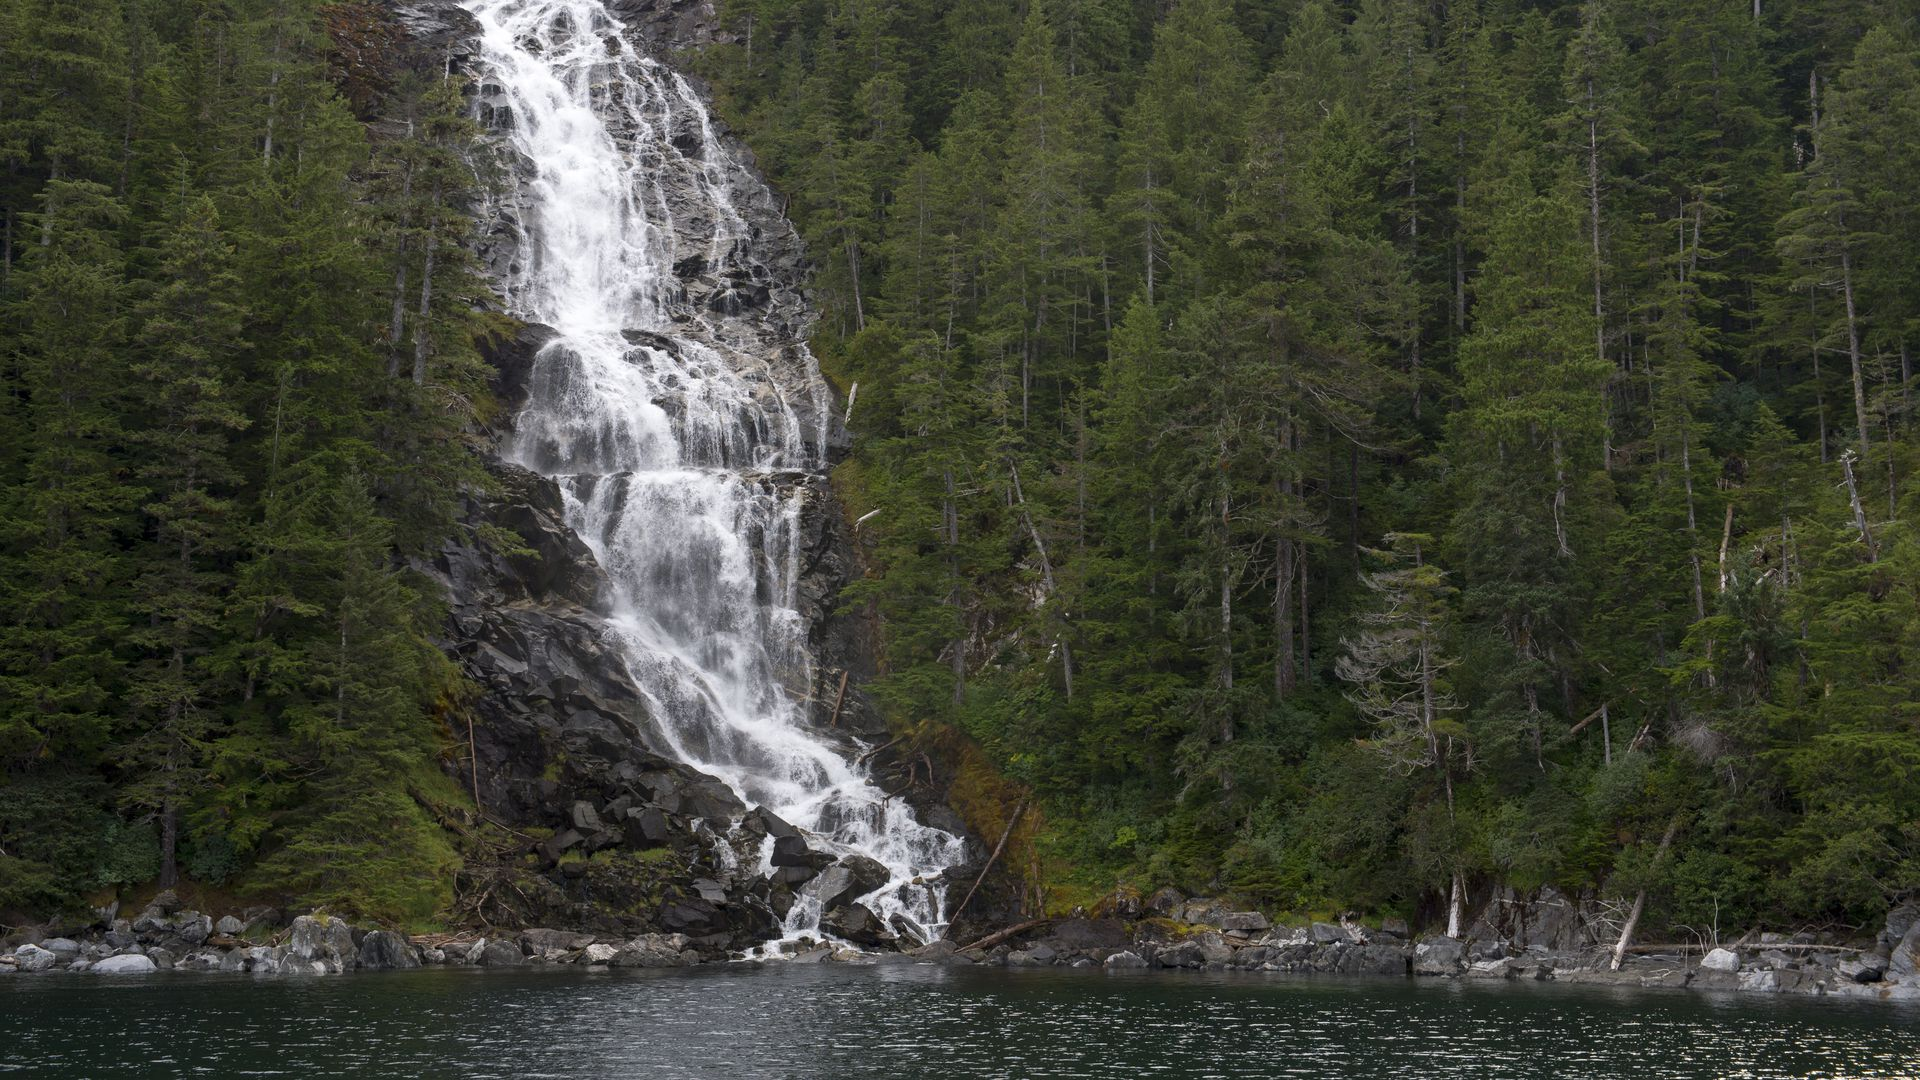 USDA Forest Service wants to expand logging in Tongass National Forest